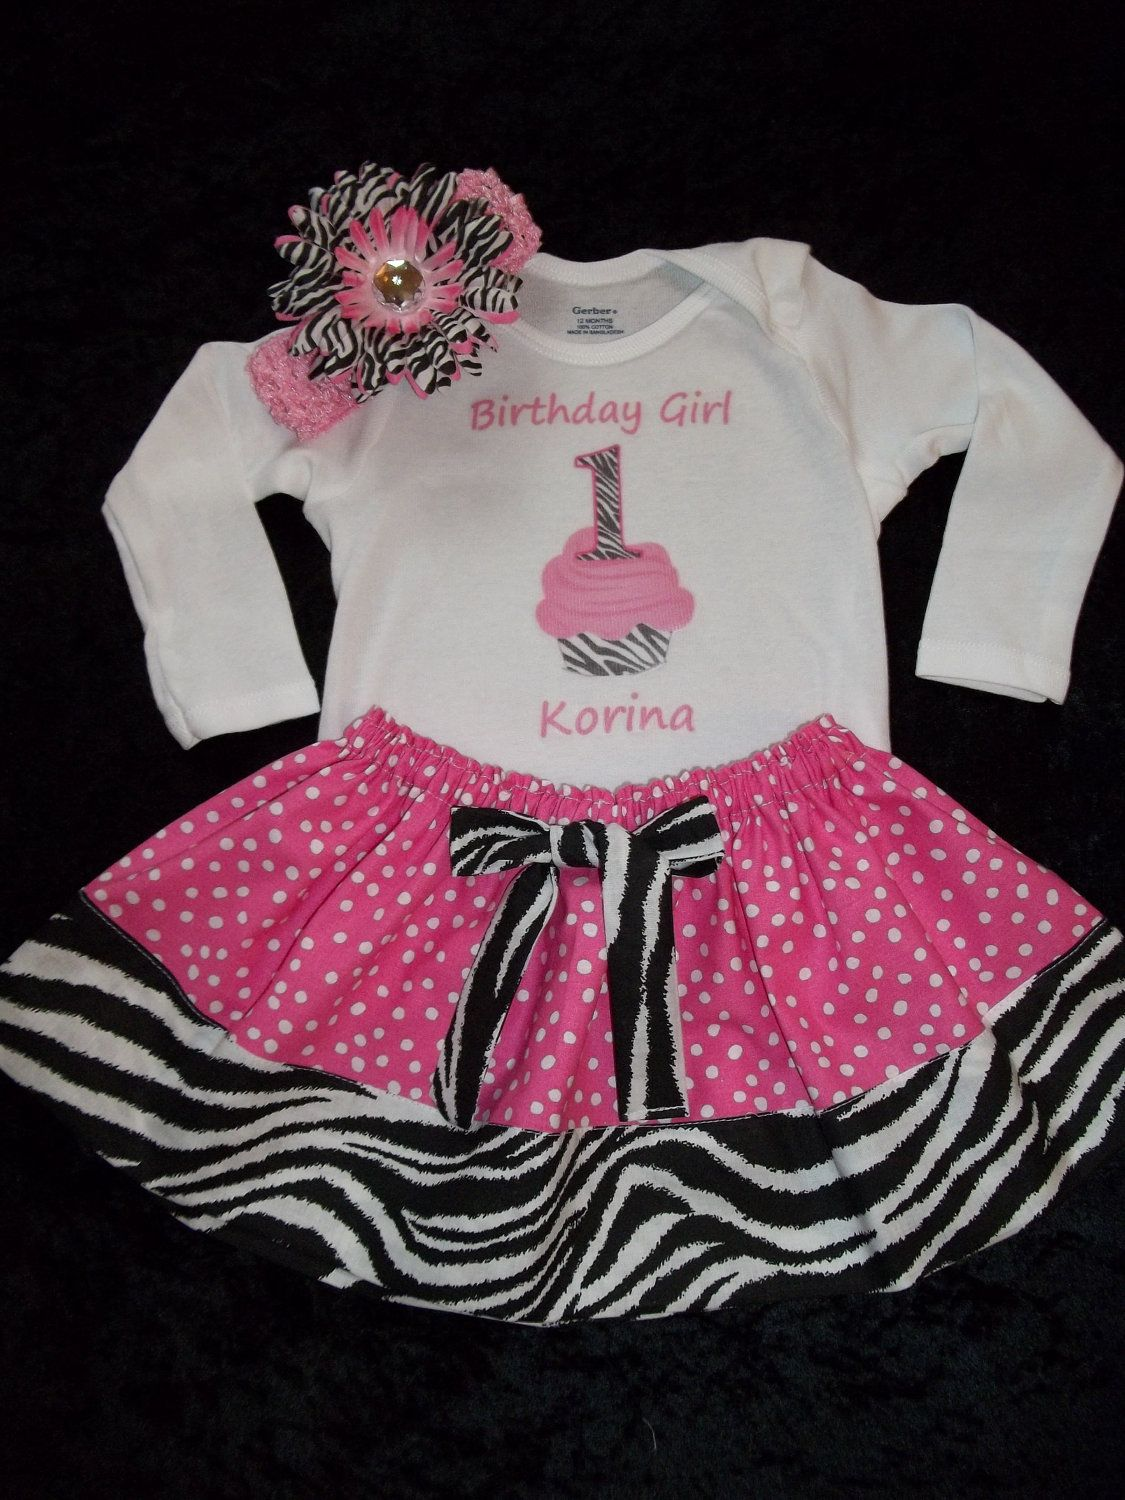 510eb8f8895f4 Birthday outfit cupcake baby girl pink dress onesie personalized skirt  toddler zebra DIVA size 3 6 9 12 18 24 months free flower headband.  45.50